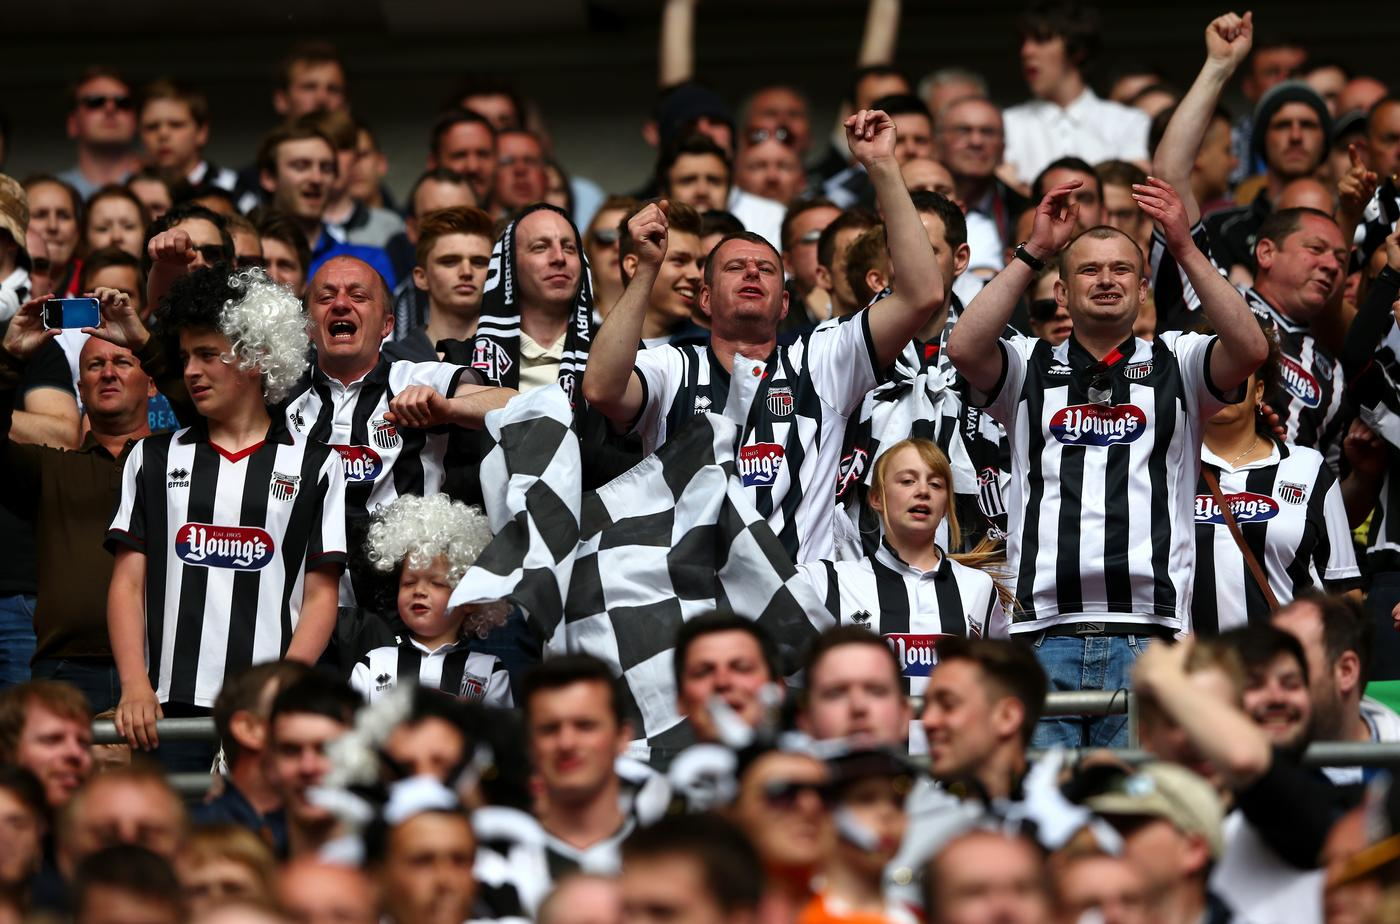 Grimsby Town's 'Operation Promotion' can remind us that football is not all about Sepp Blatter's Fifa corruption scandal